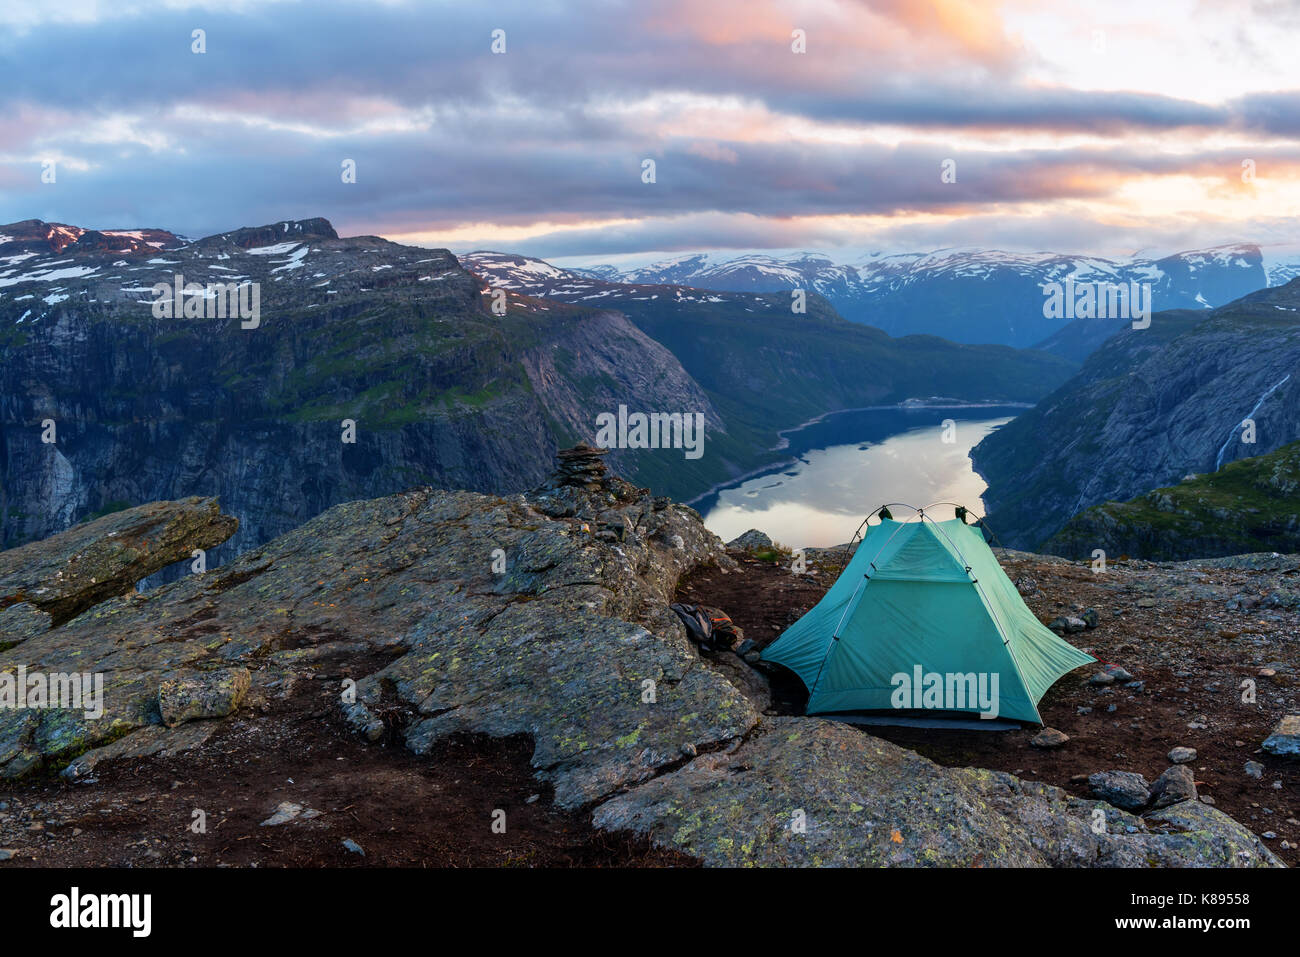 Alone tent near Trolltunga rock - most spectacular and famous scenic cliff in Norway - Stock Image